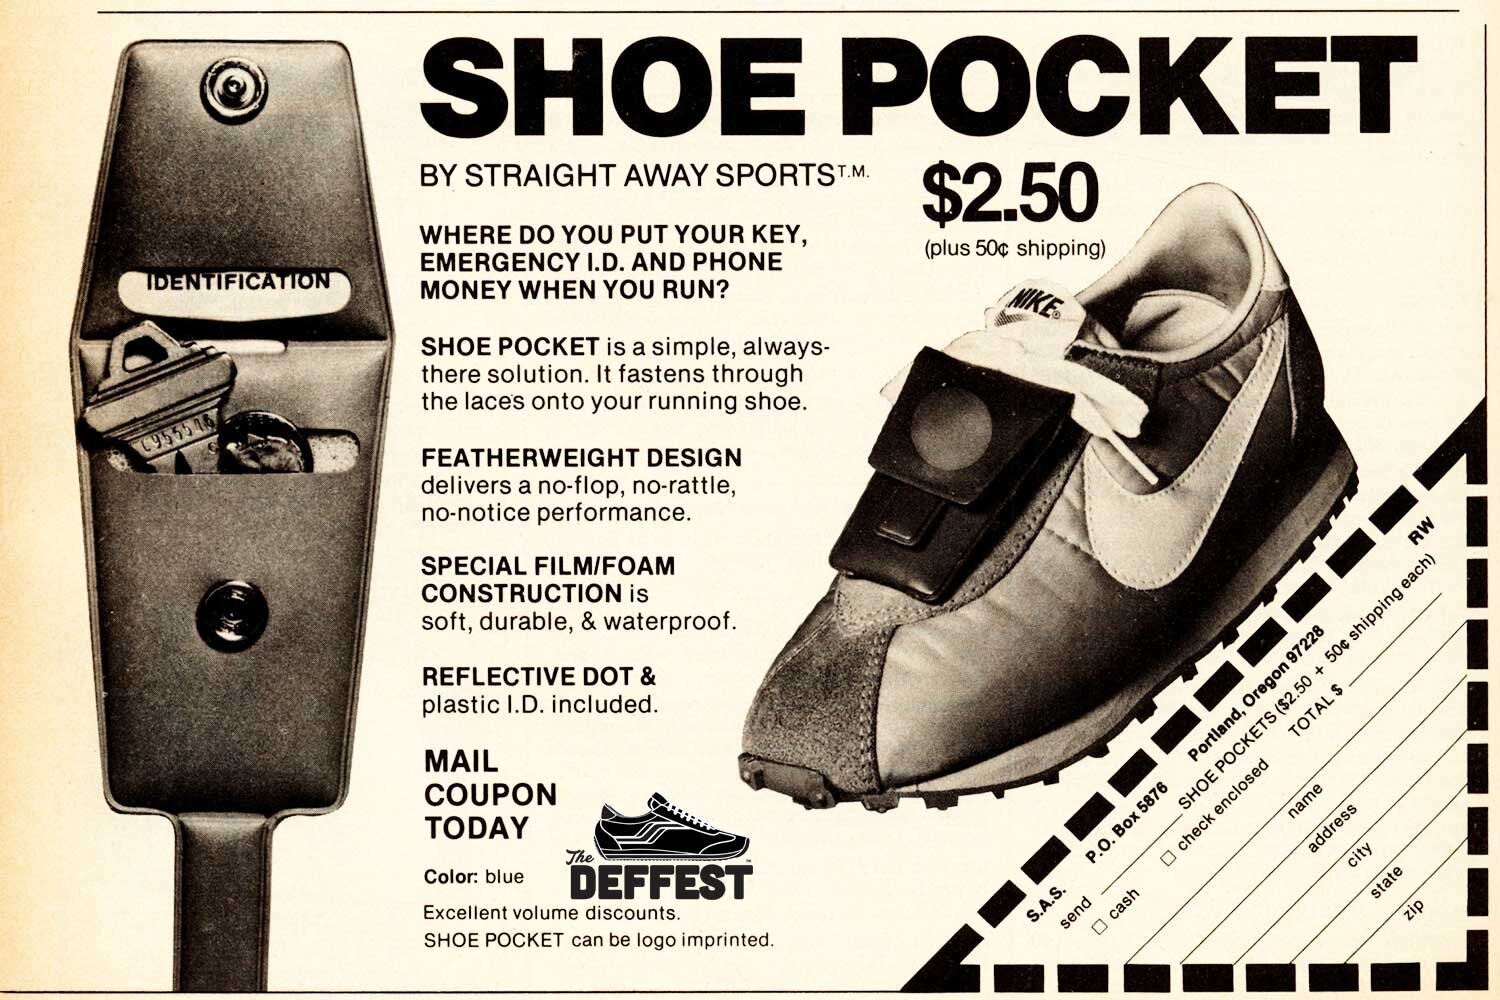 The Deffest A Vintage And Retro Sneaker Blog Vintage Shoe Pocket Nike Waffle Ad From 1979